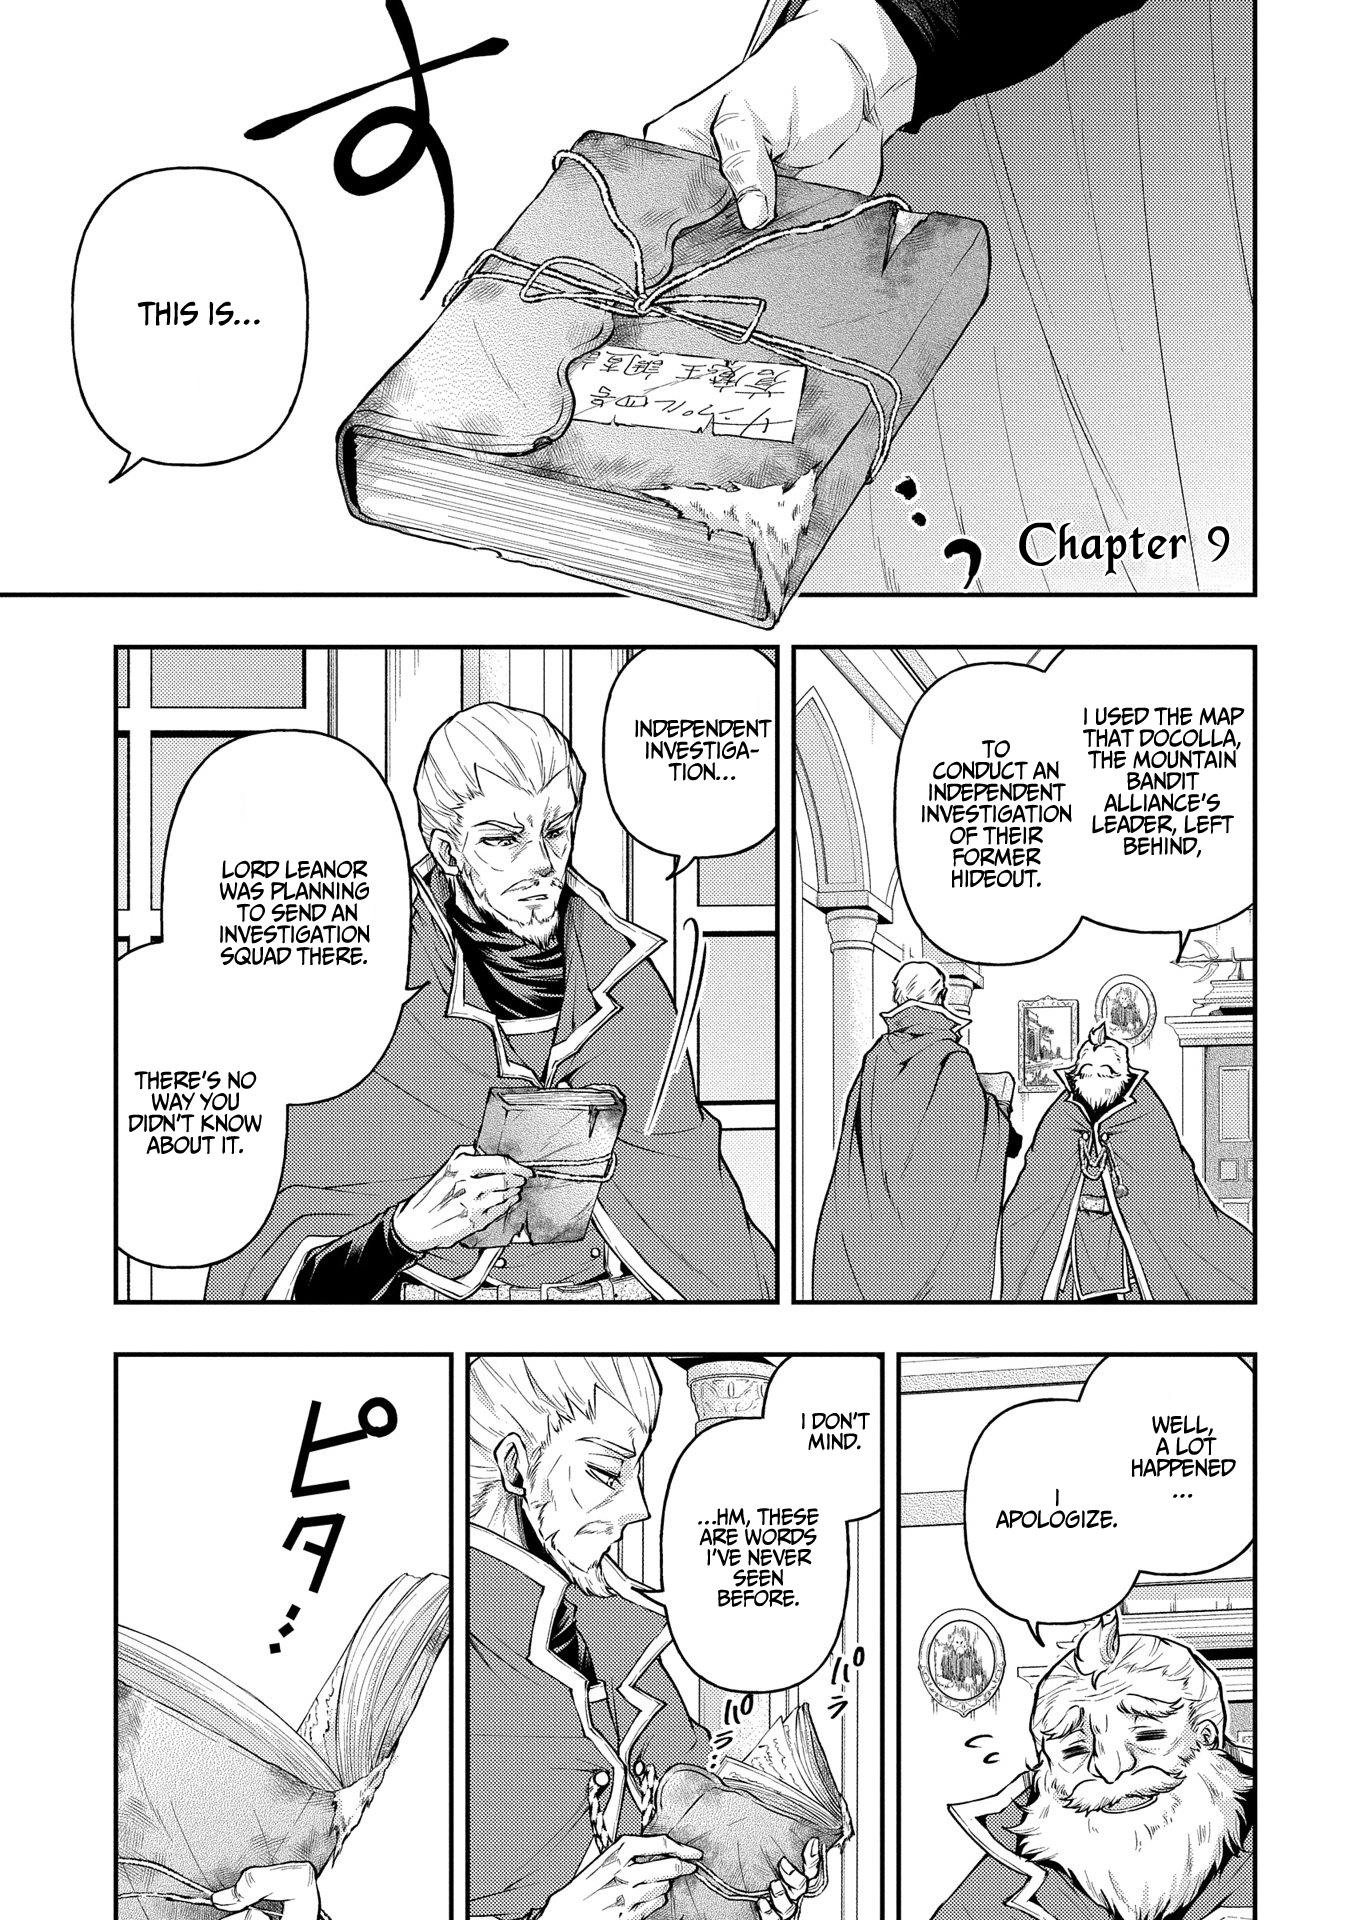 It's Sudden, but I came to Another World! But i hope to live Safely - chapter 9 - #2